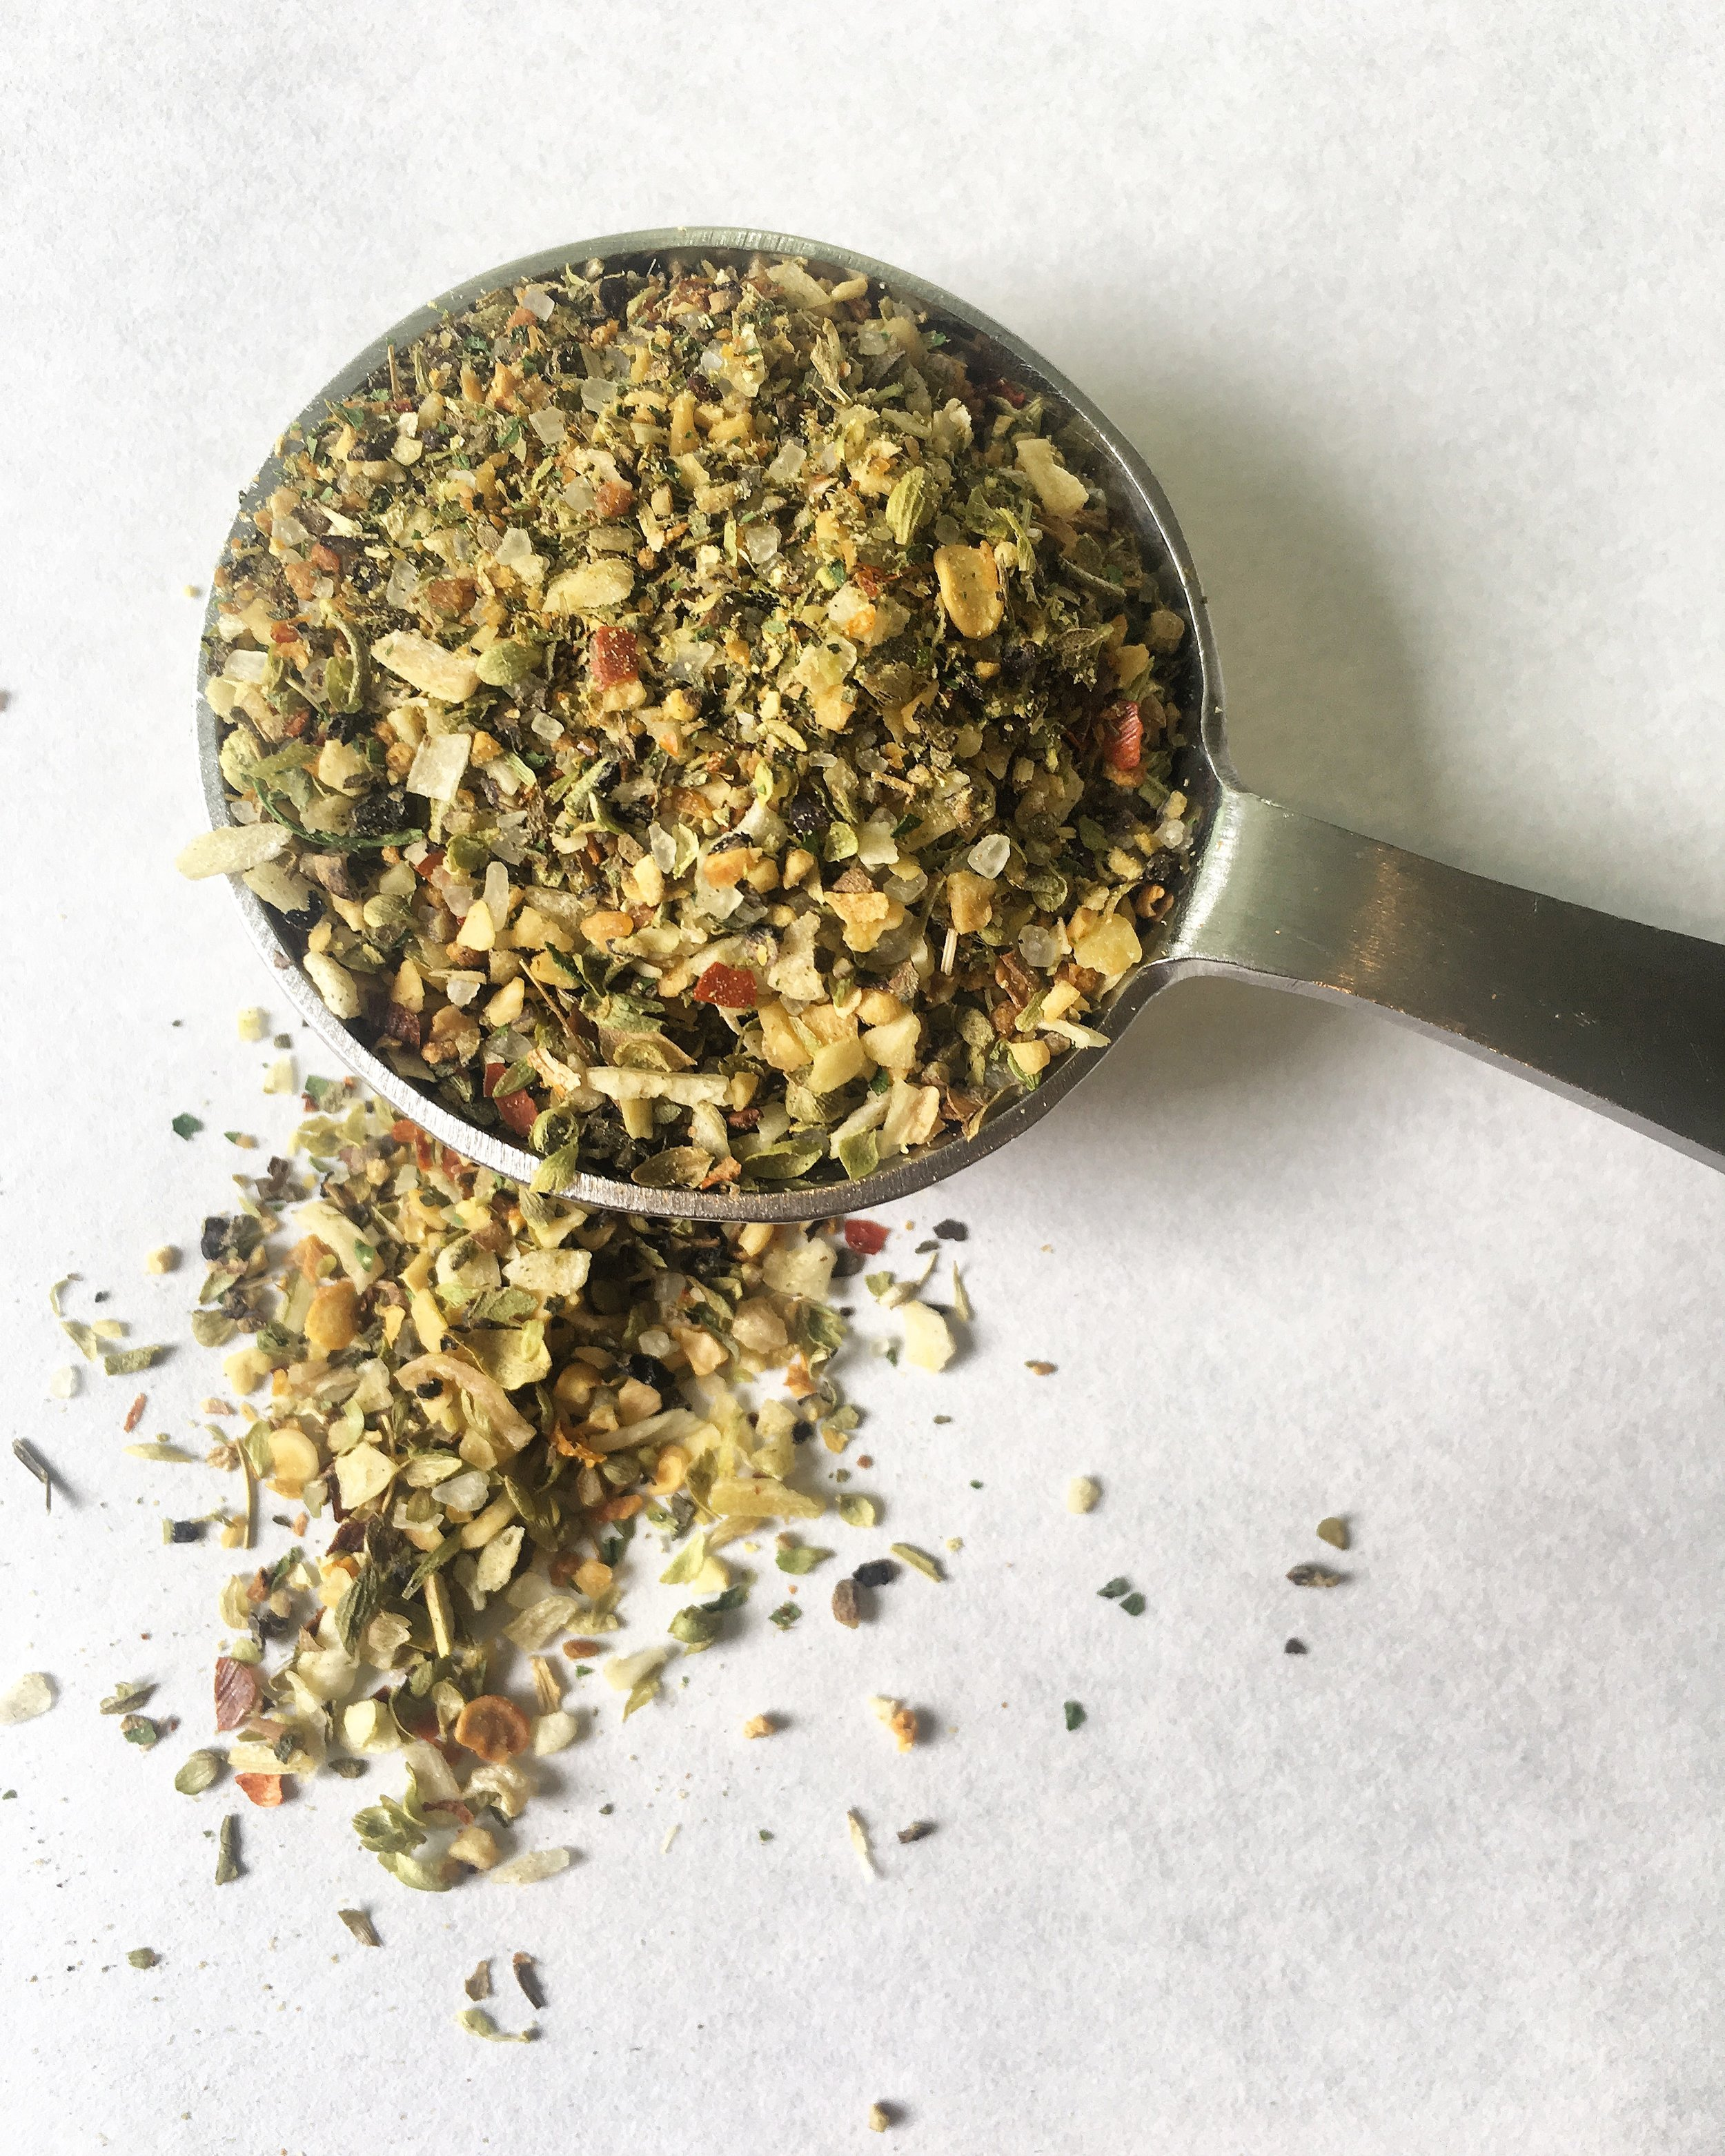 Greek Spice Blend - I'm 100% Greek in ethnicity. So, my go-to spice blend reflects the herbs and spices that I grew up eating in some of my most favorite dishes. I use it on chicken, steak, lamb, shrimp, salmon, turkey, vegetables and everything in between.2 teaspoons dried minced onion2 teaspoons dried minced garlic3 teaspoons dried Greek or Mediterranean oregano¼ teaspoon red chili flake¼ teaspoon dried orange peel1/8 teaspoon cinnamon1 teaspoon kosher or sea salt½ teaspoon freshly-cracked pepperWhisk all ingredients up in a little bowl or jar and season away!